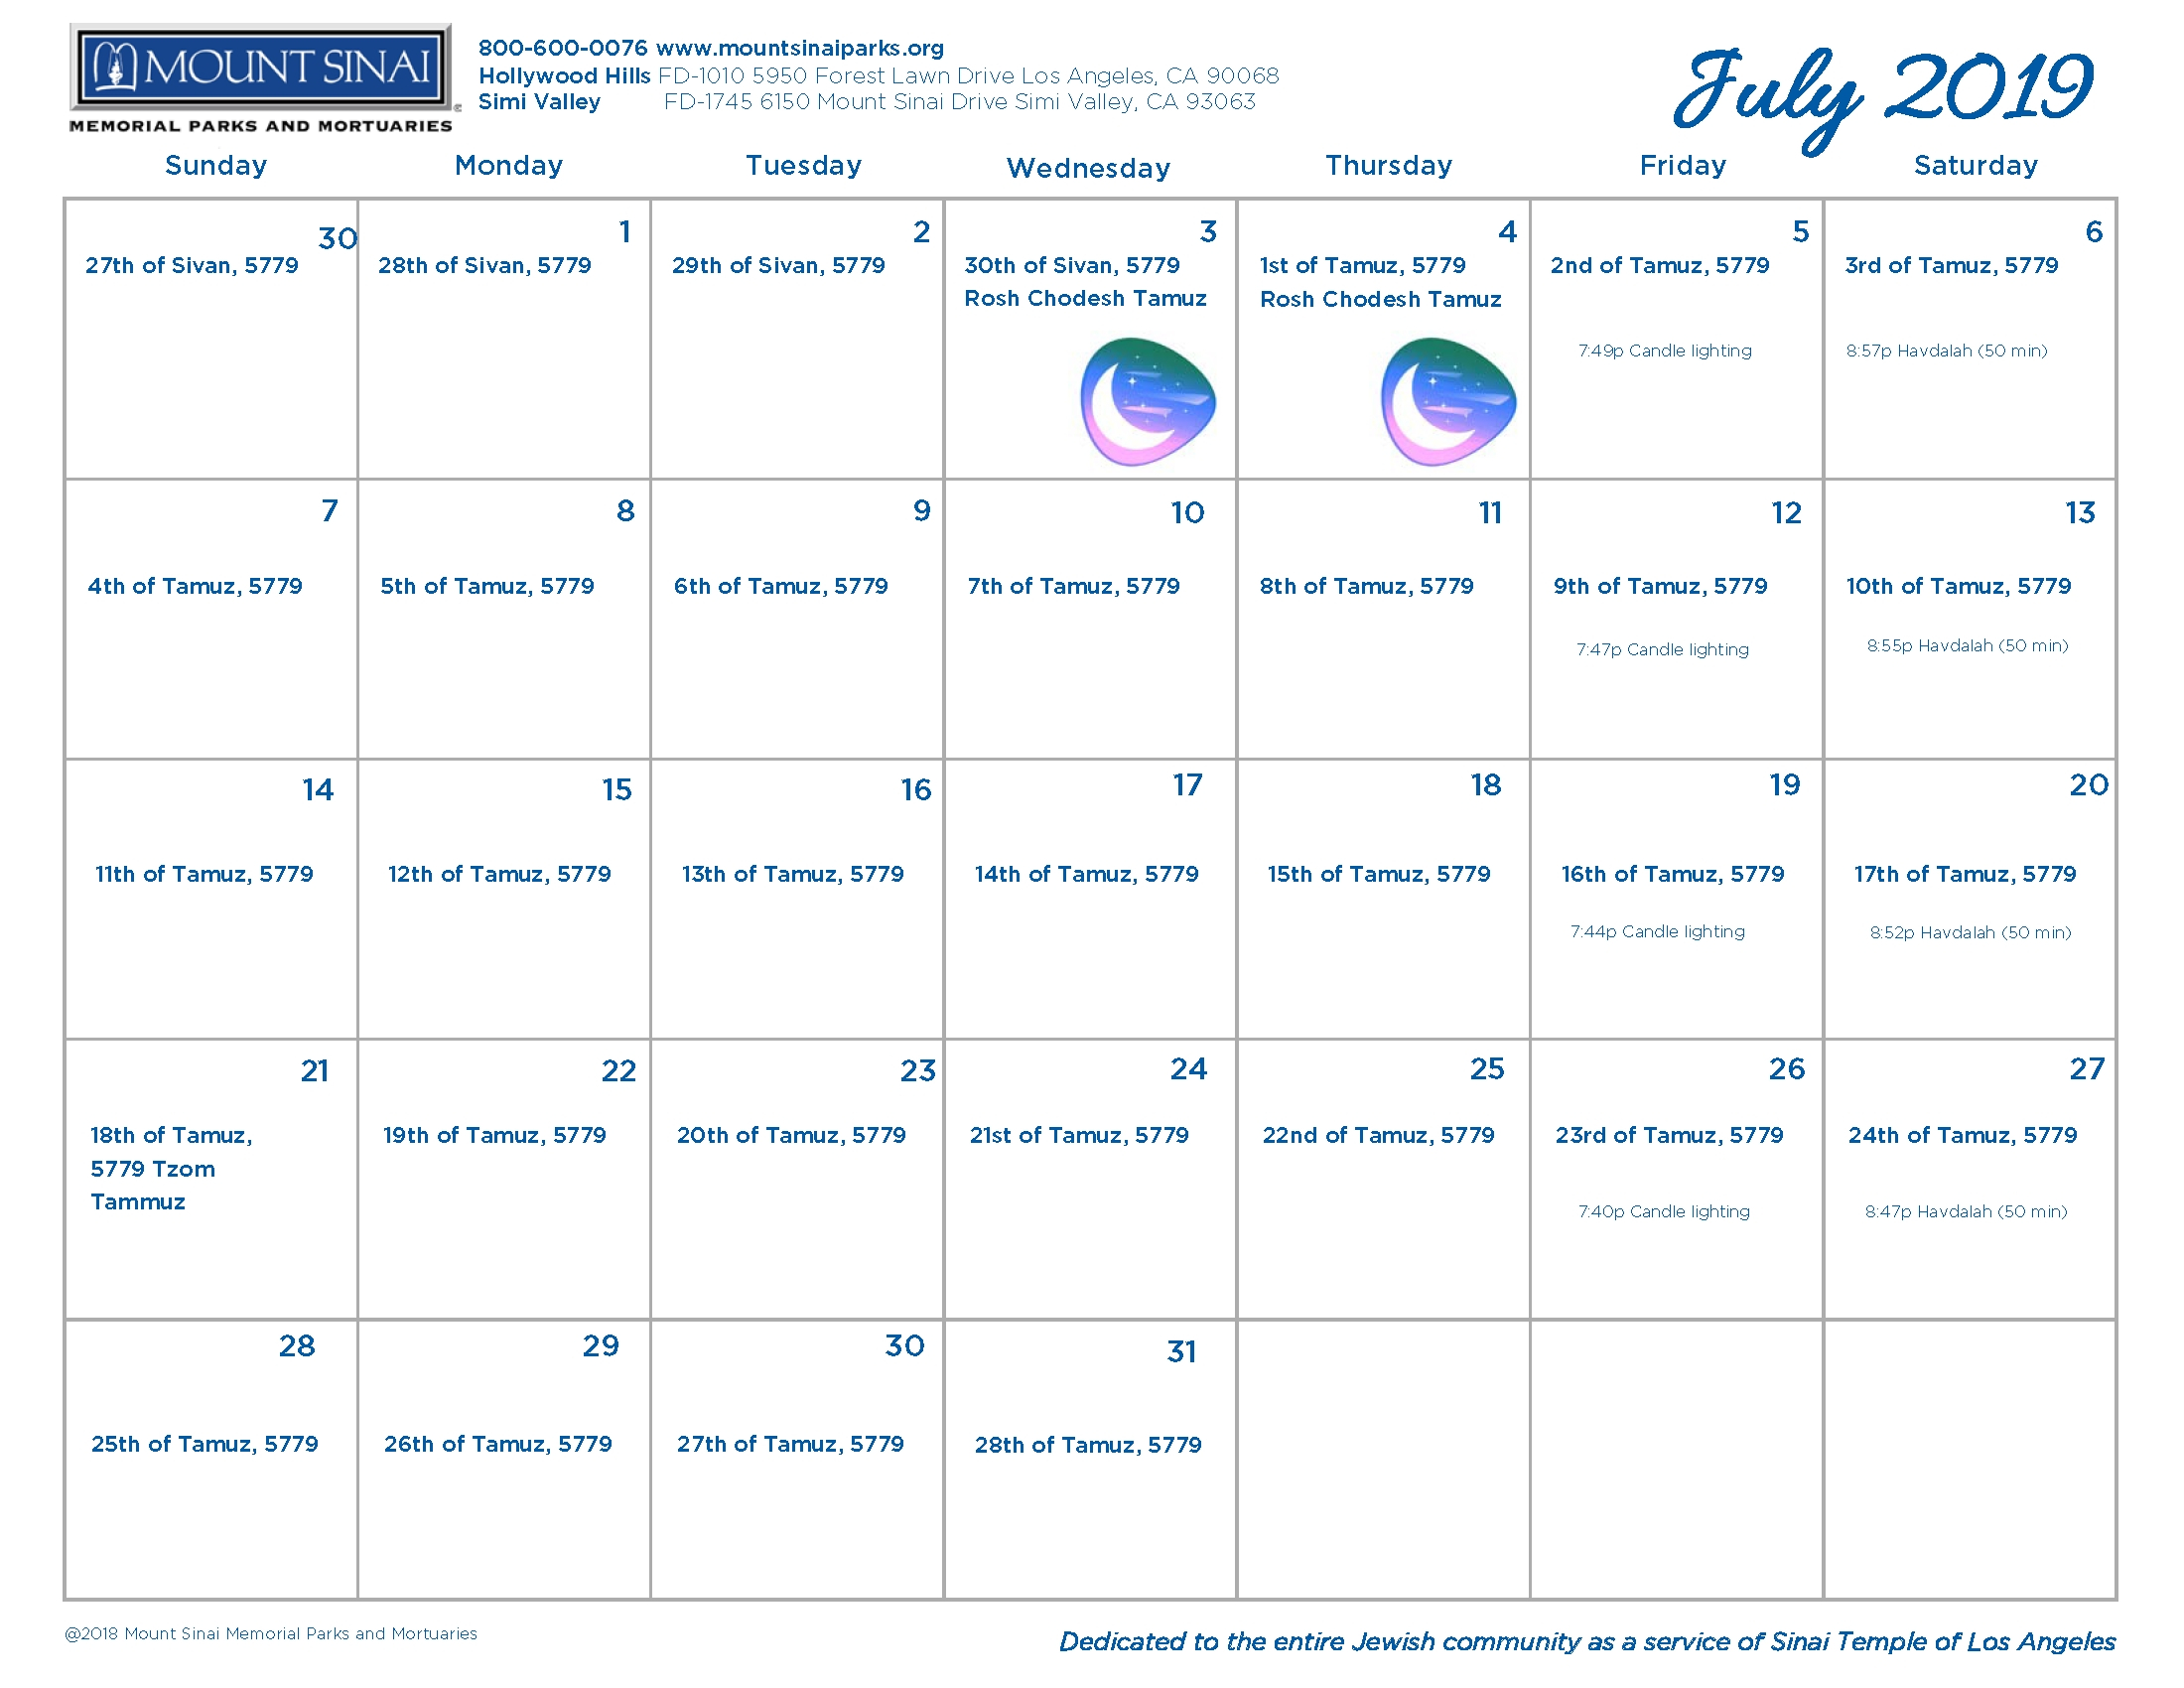 Get Jewish Calendar For August And September 2019 ⋆ The